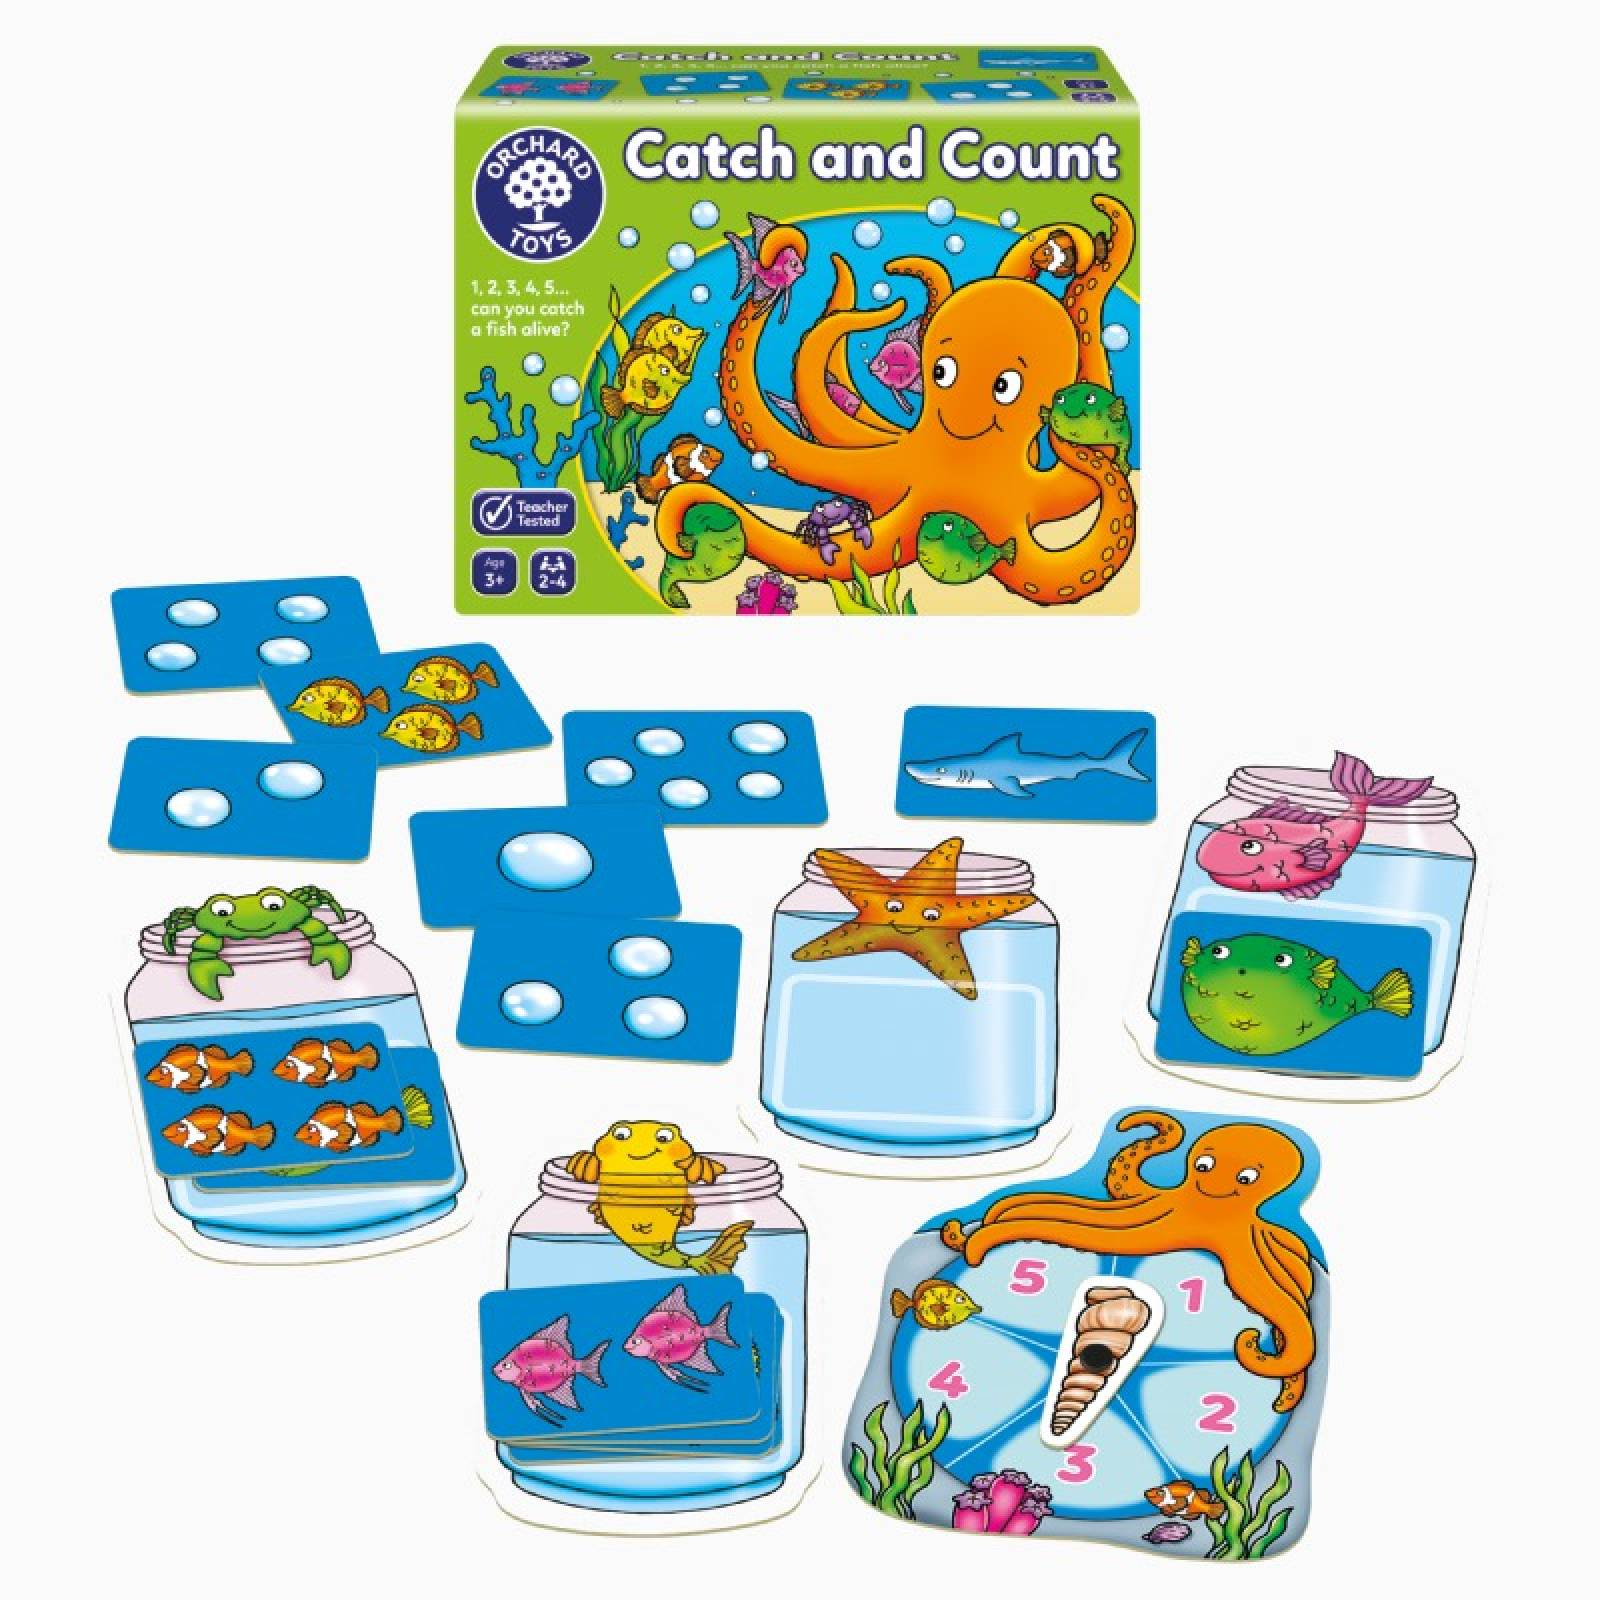 Catch And Count Game By Orchard Toys 3+ thumbnails